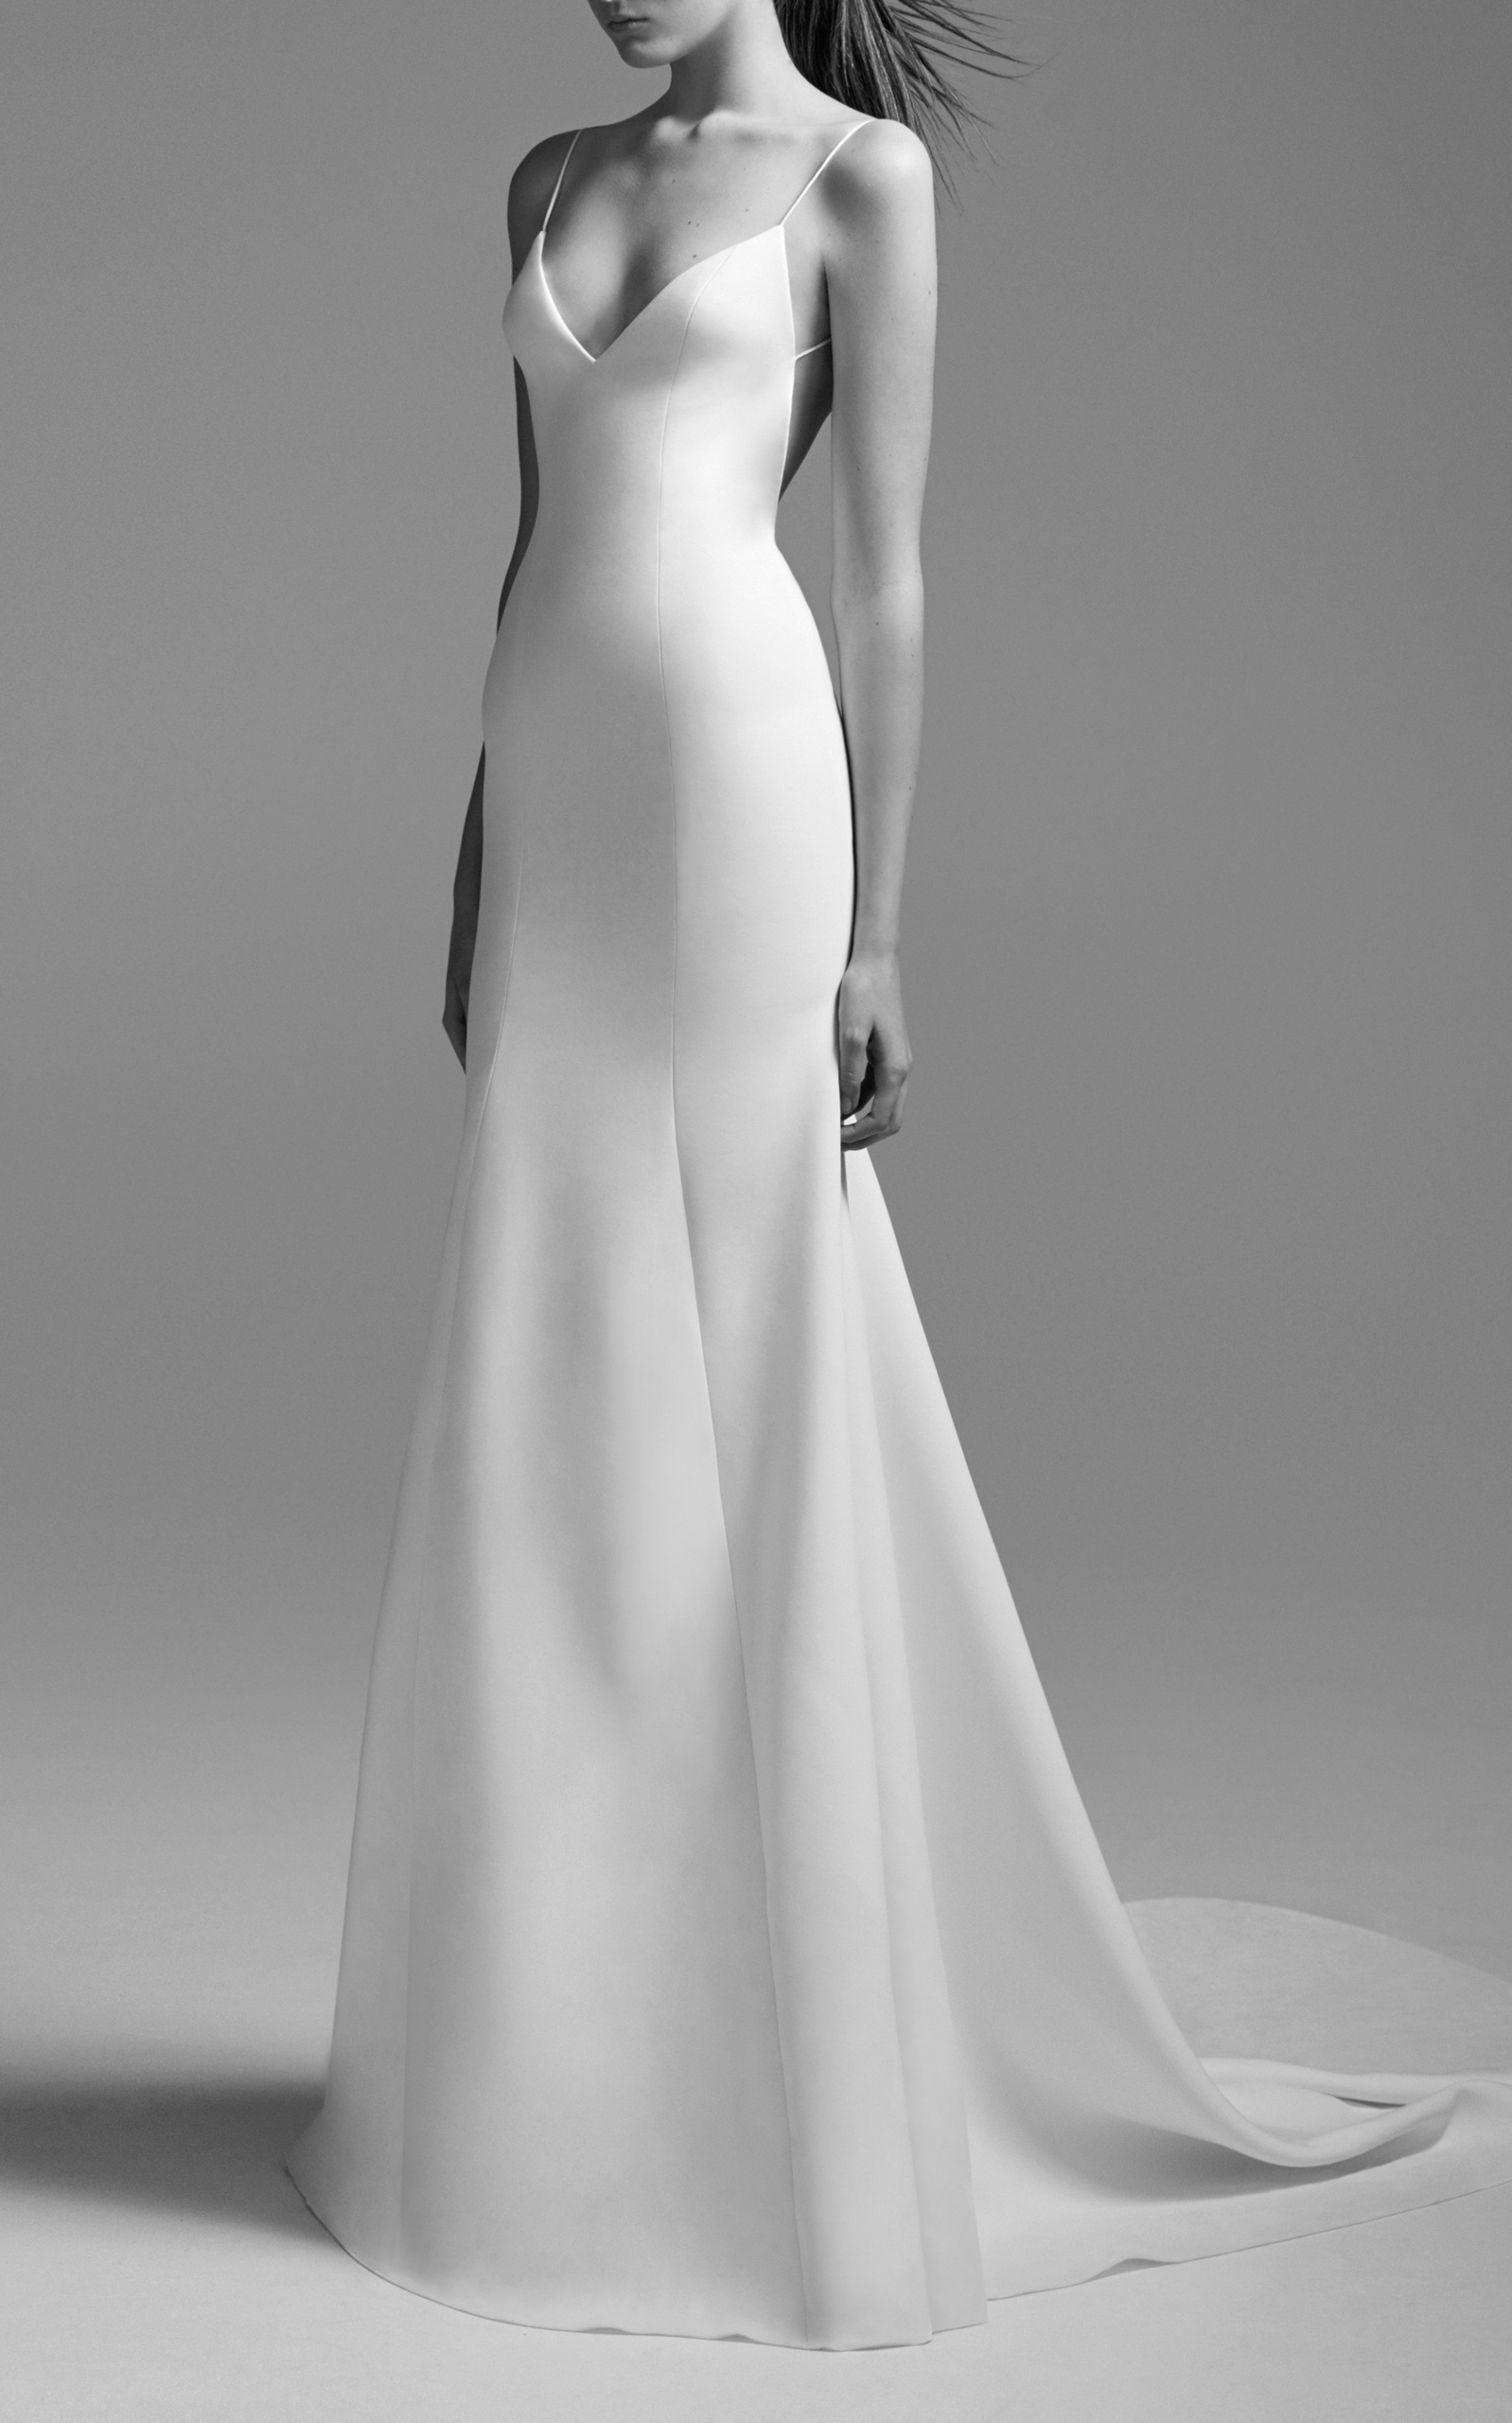 Kristen Satin Bikini Gown by Alex Perry Bride | Moda Operandi